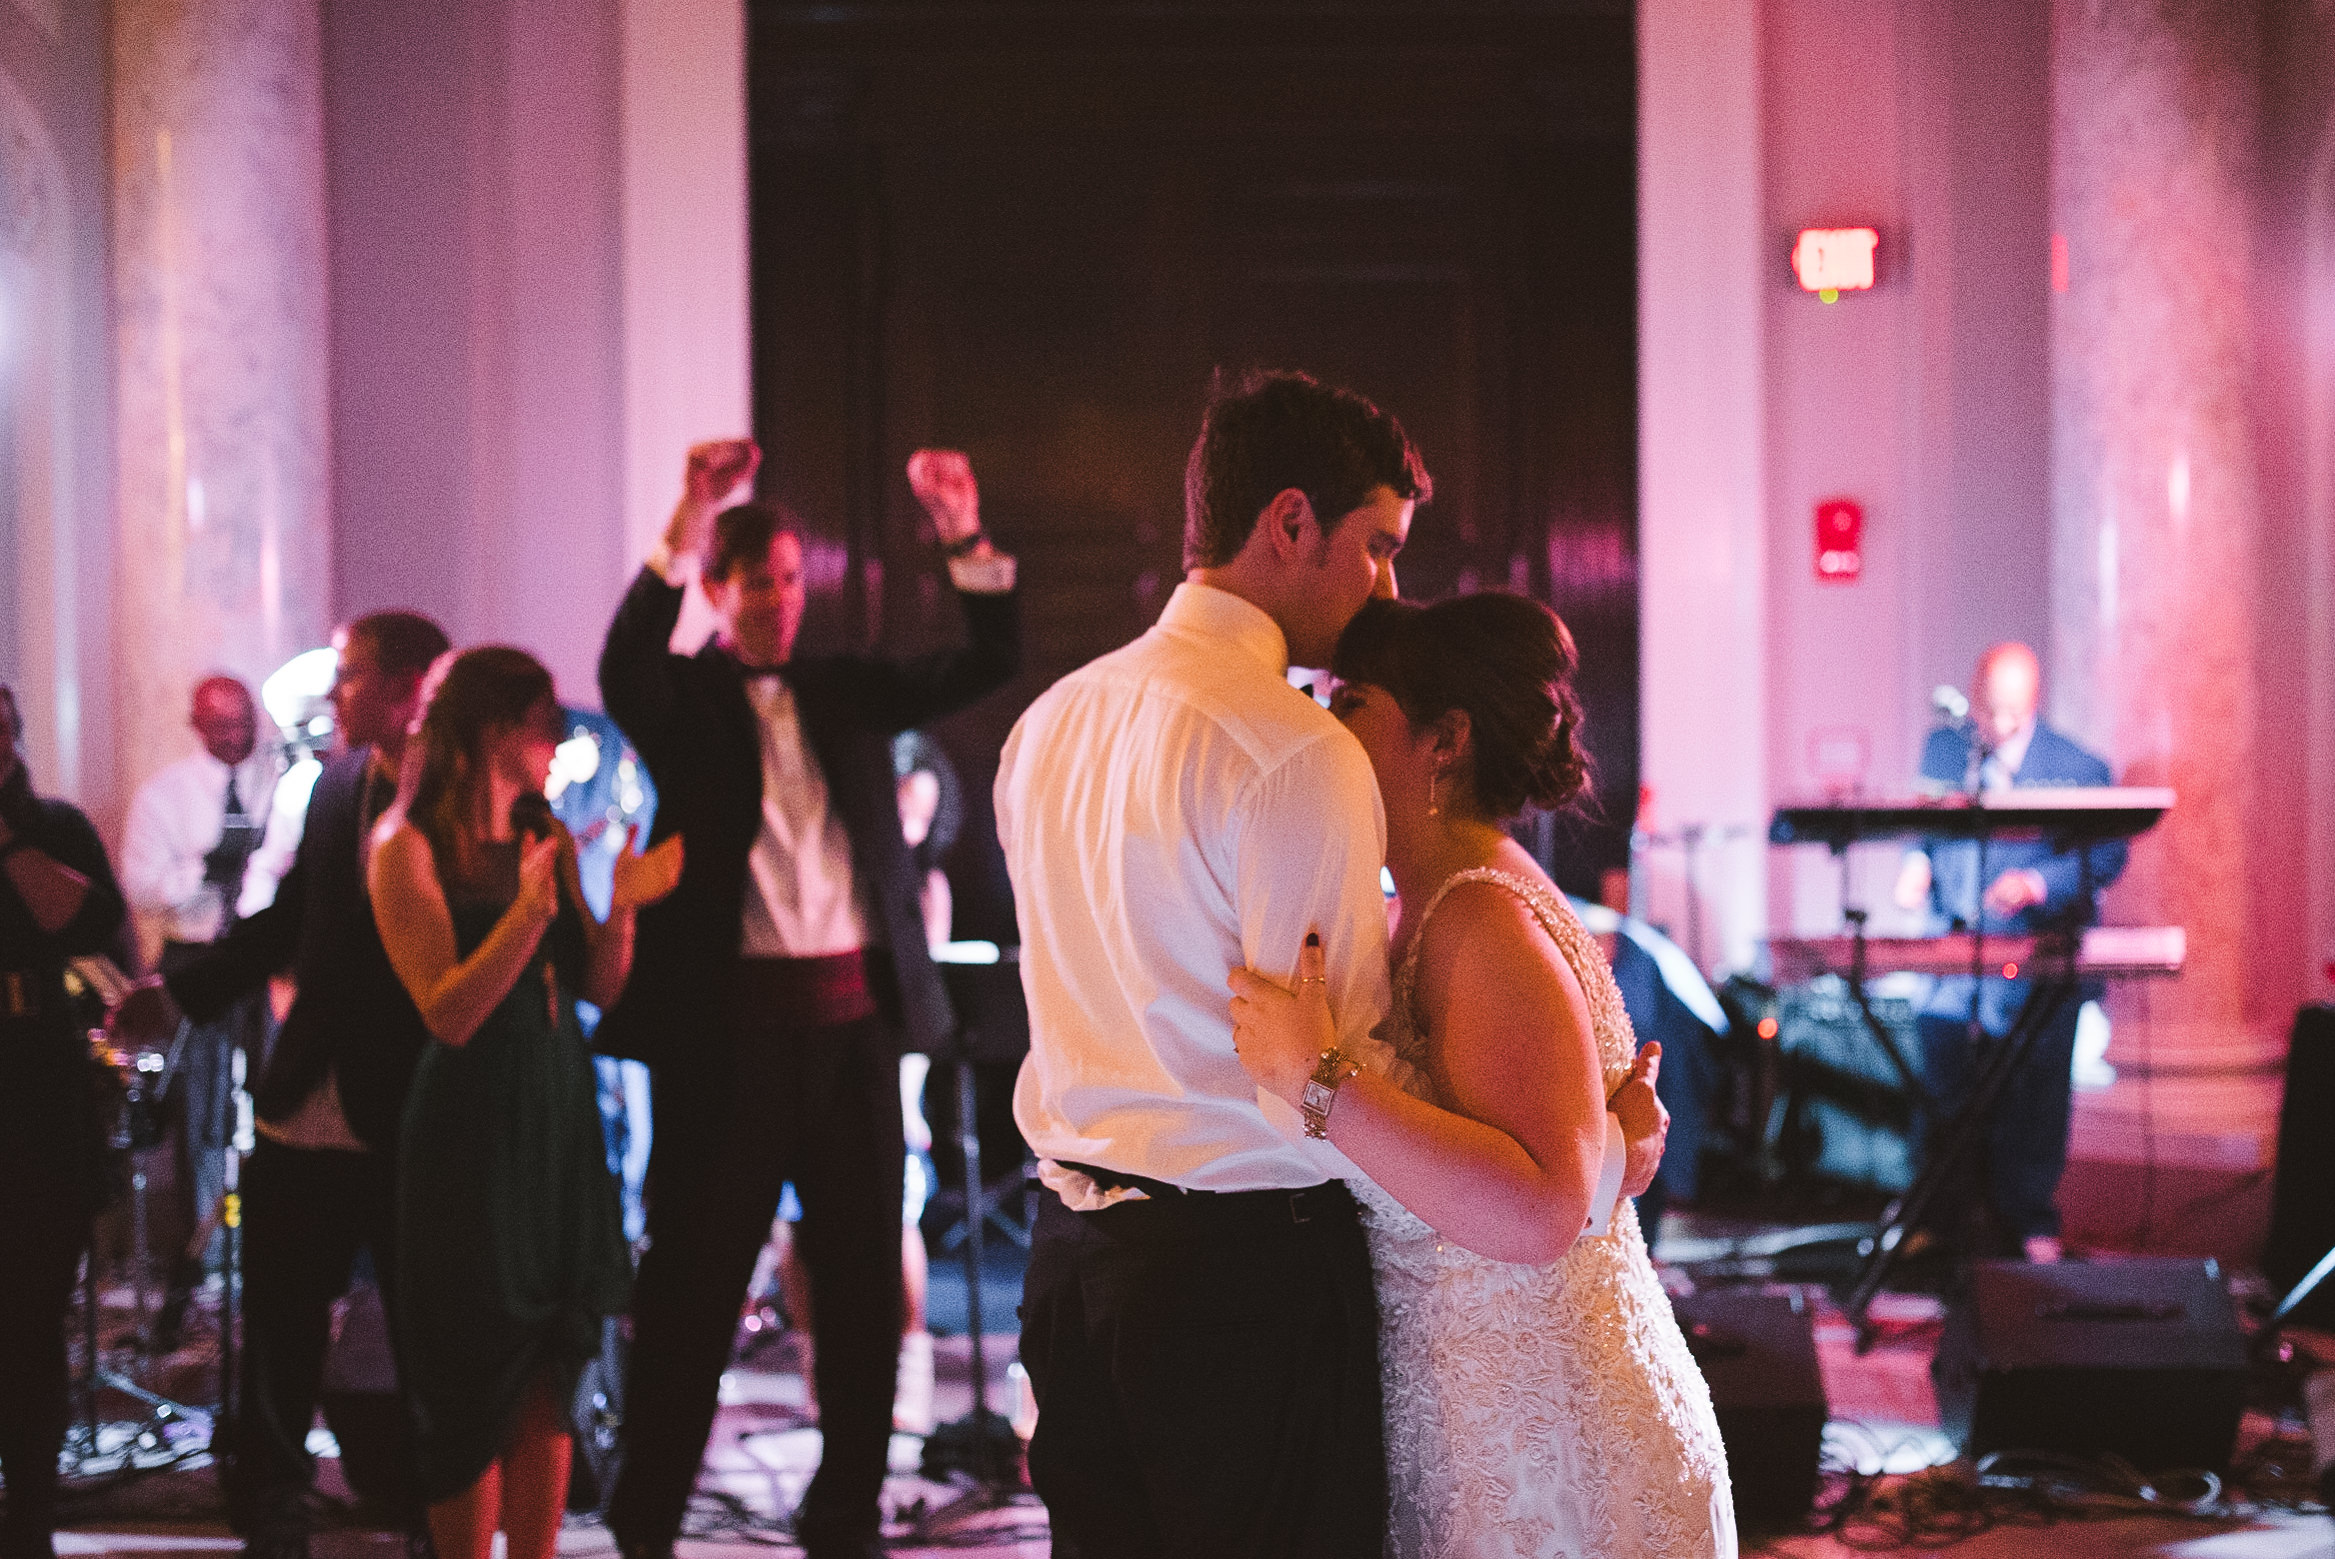 Carnegie Institution for Science Wedding Photographer Mantas Kubilinskas-37.jpg